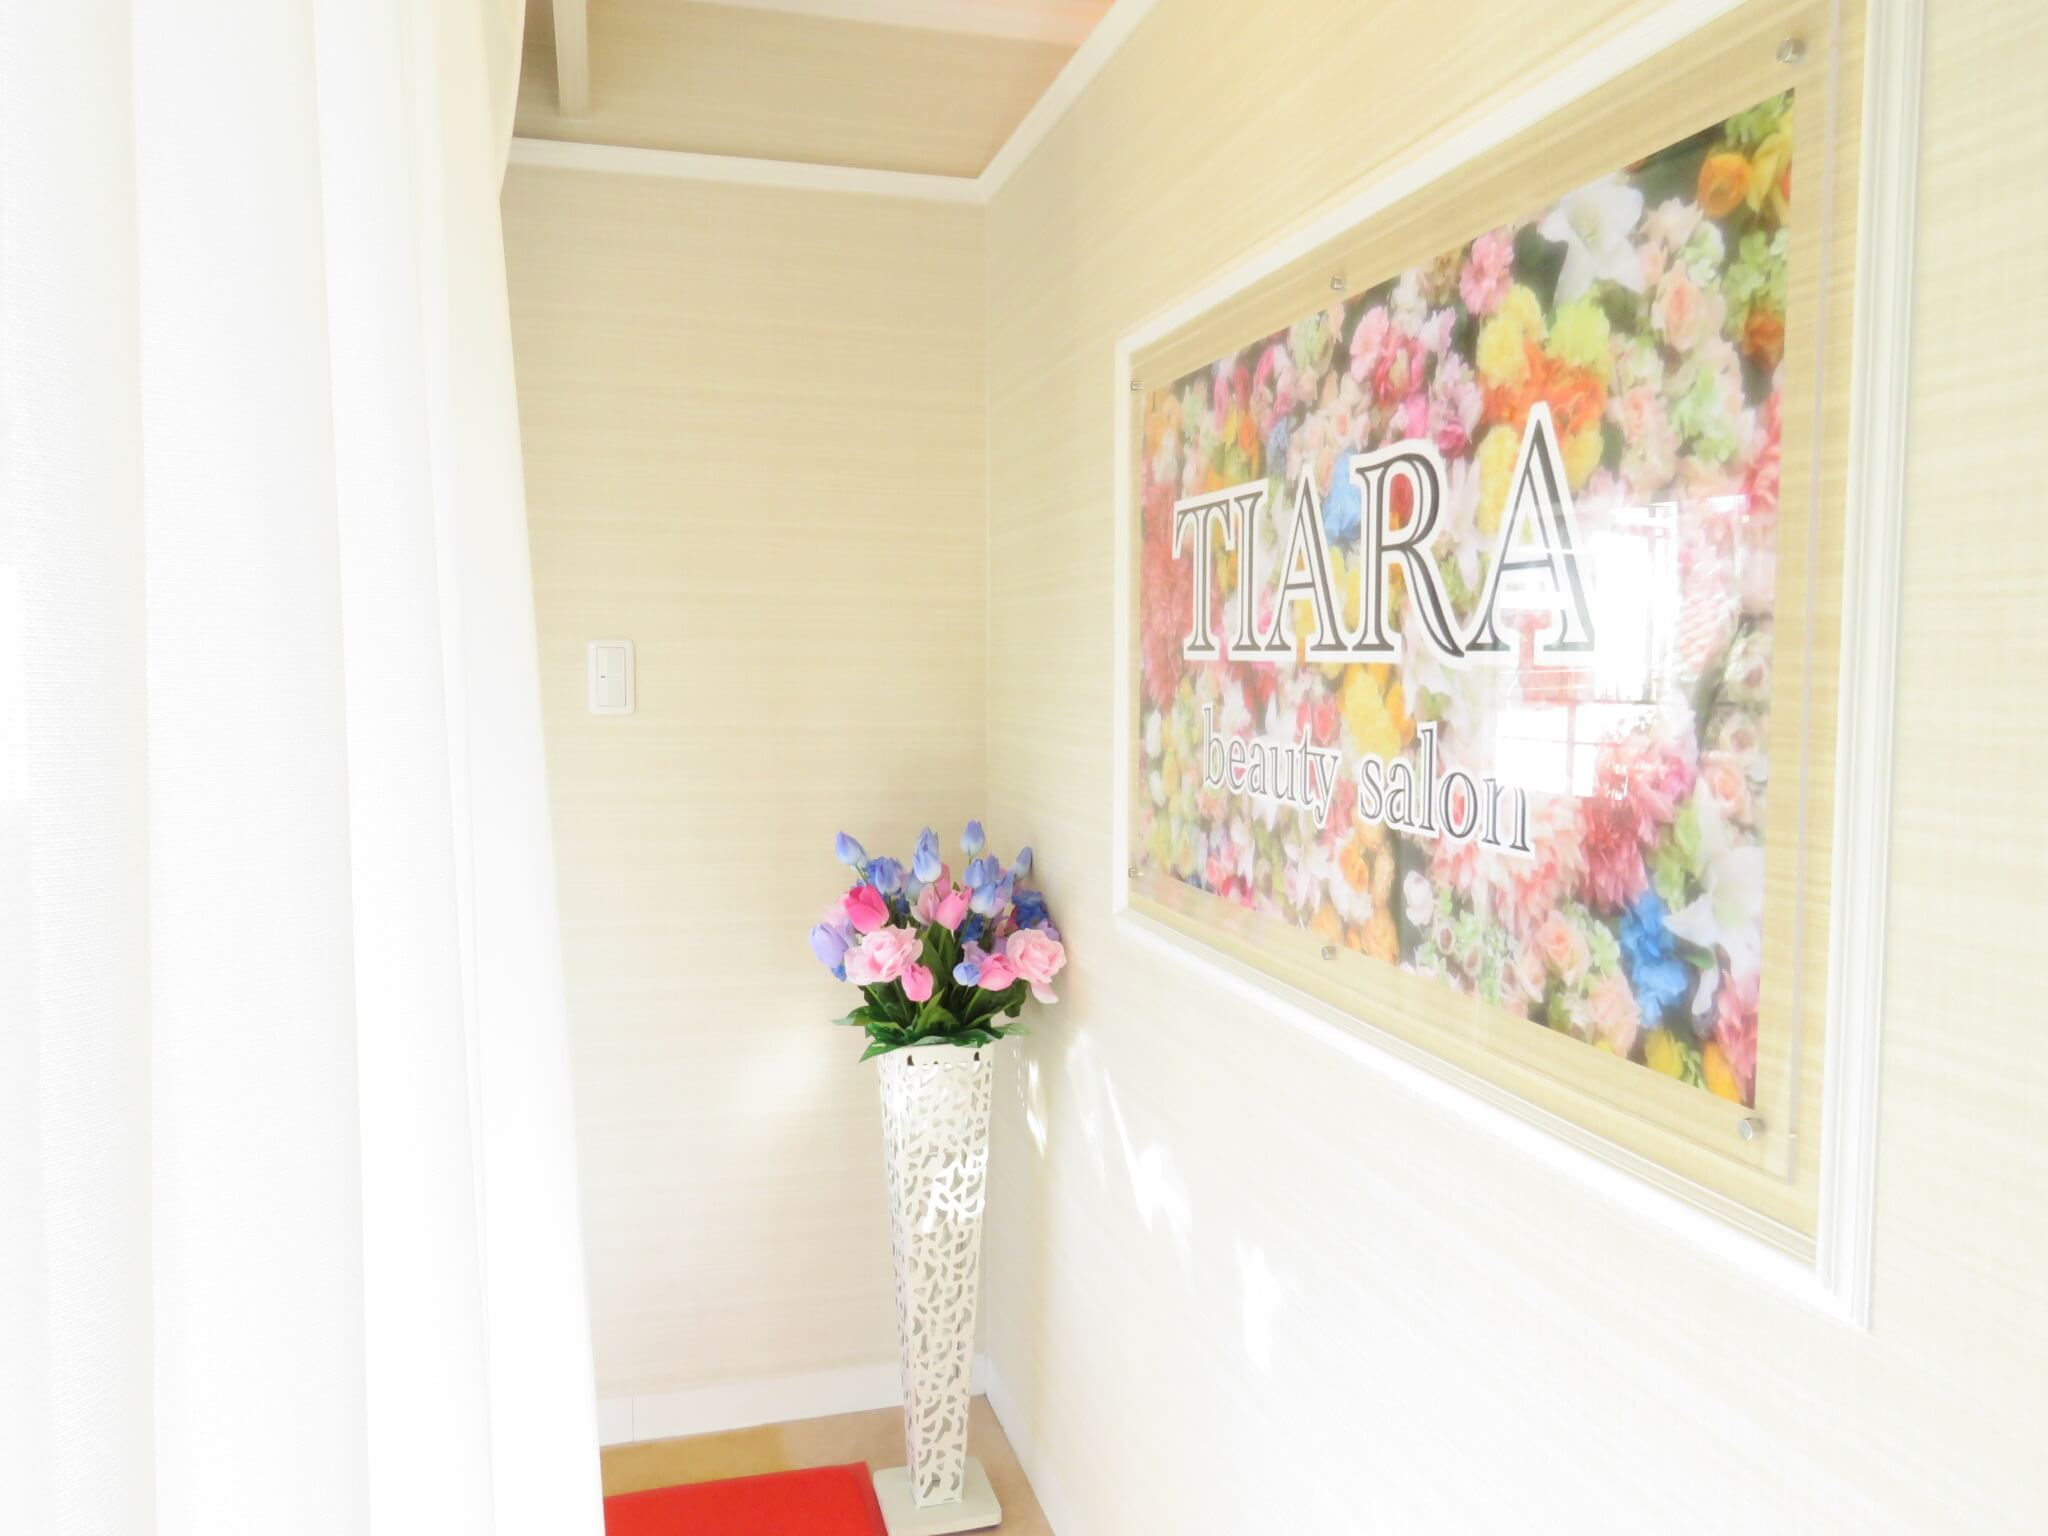 TIARA beauty salon入り口